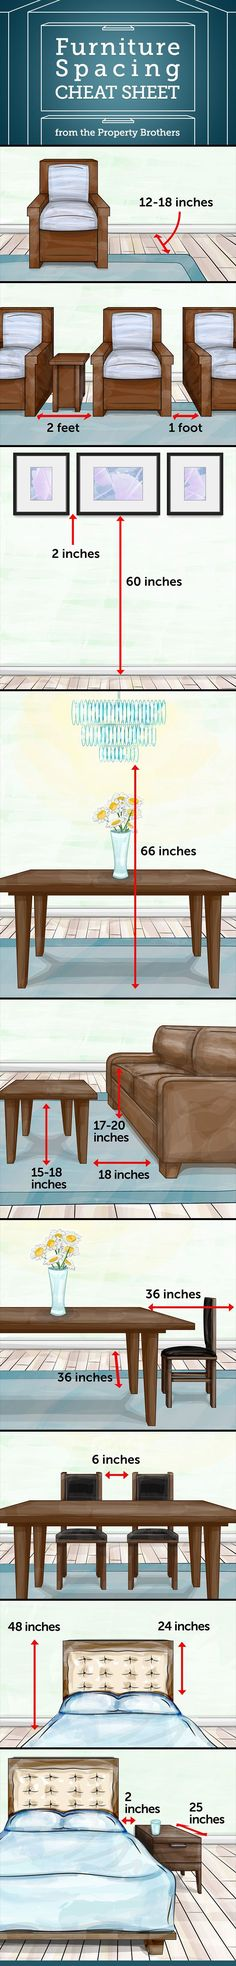 The Property Brothers' Design Cheat Sheet That You Need In their new book Dream Home, the hosts of HGTV's Property Brothers reveal a few essential measurements—from area rug size to chandelier height—that'll help you decorate your space to scale. Property Brothers Designs, Property Design, Furniture Placement, Furniture Layout, Furniture Arrangement, Furniture Design, Space Furniture, Arranging Furniture, Furniture Price